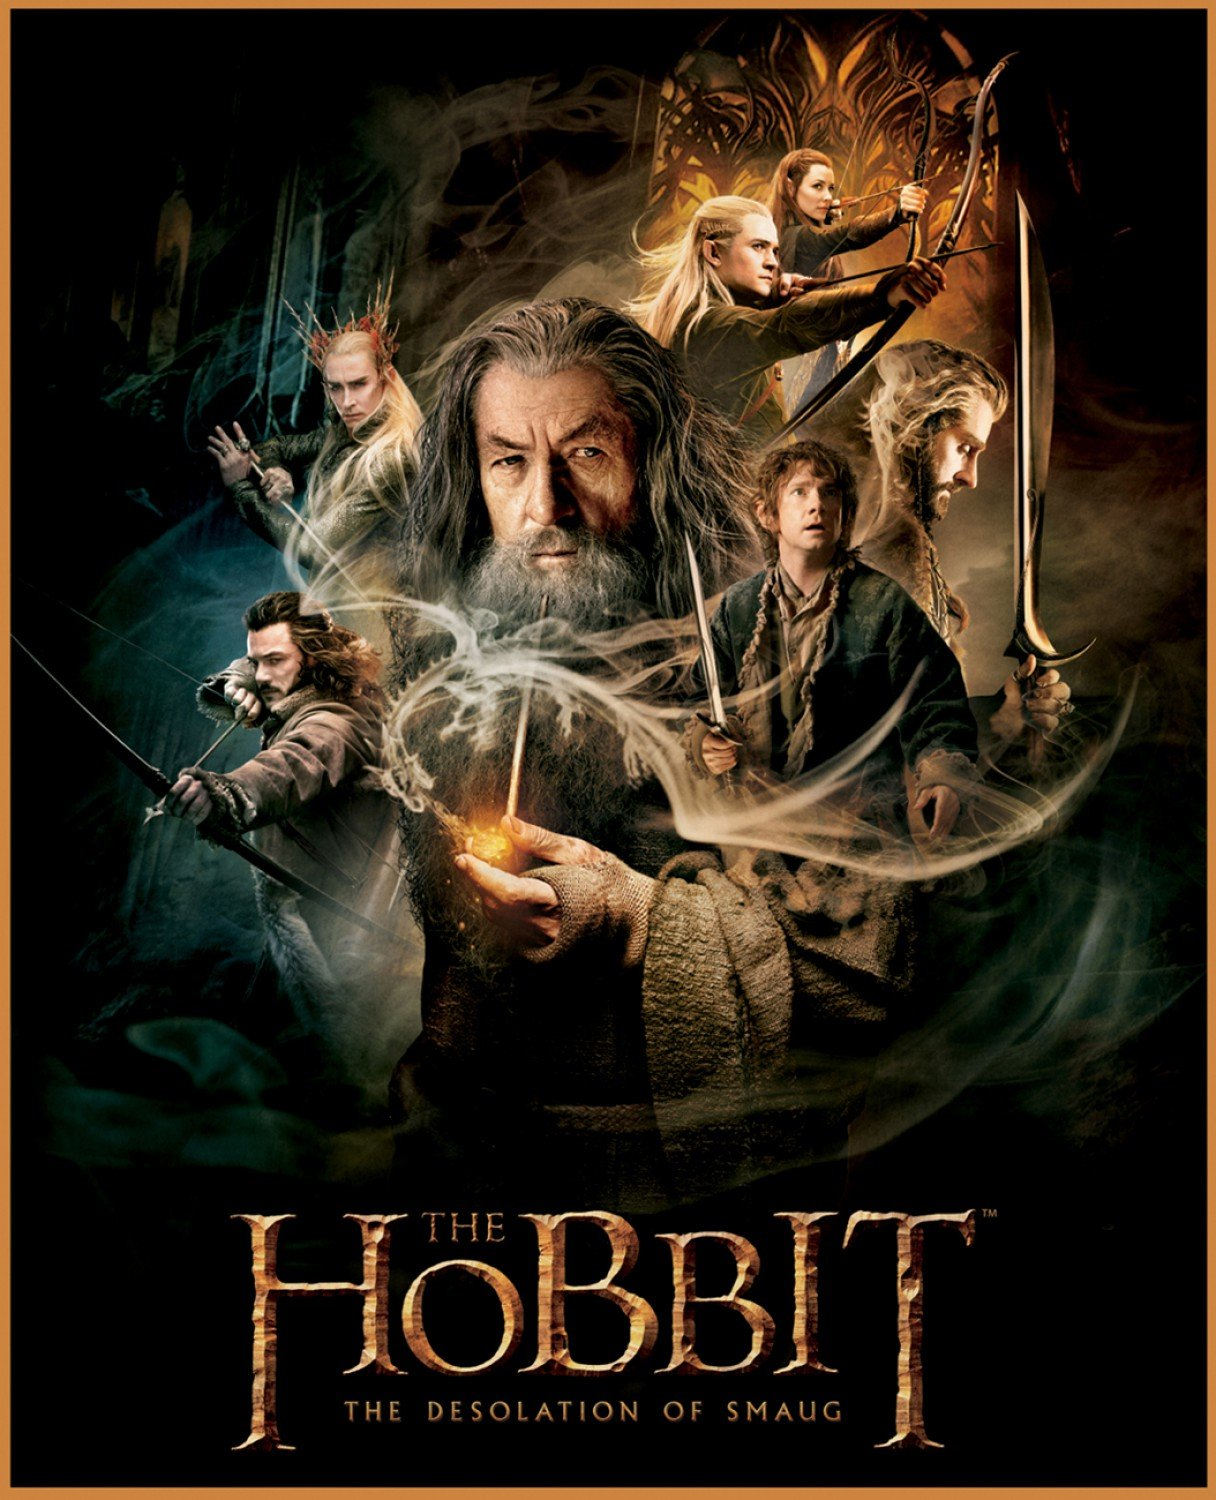 Camelot The Lord of the Rings & The Hobbit Digital 23210104JP 1 Hobbit Characters Panel $17.99/yd